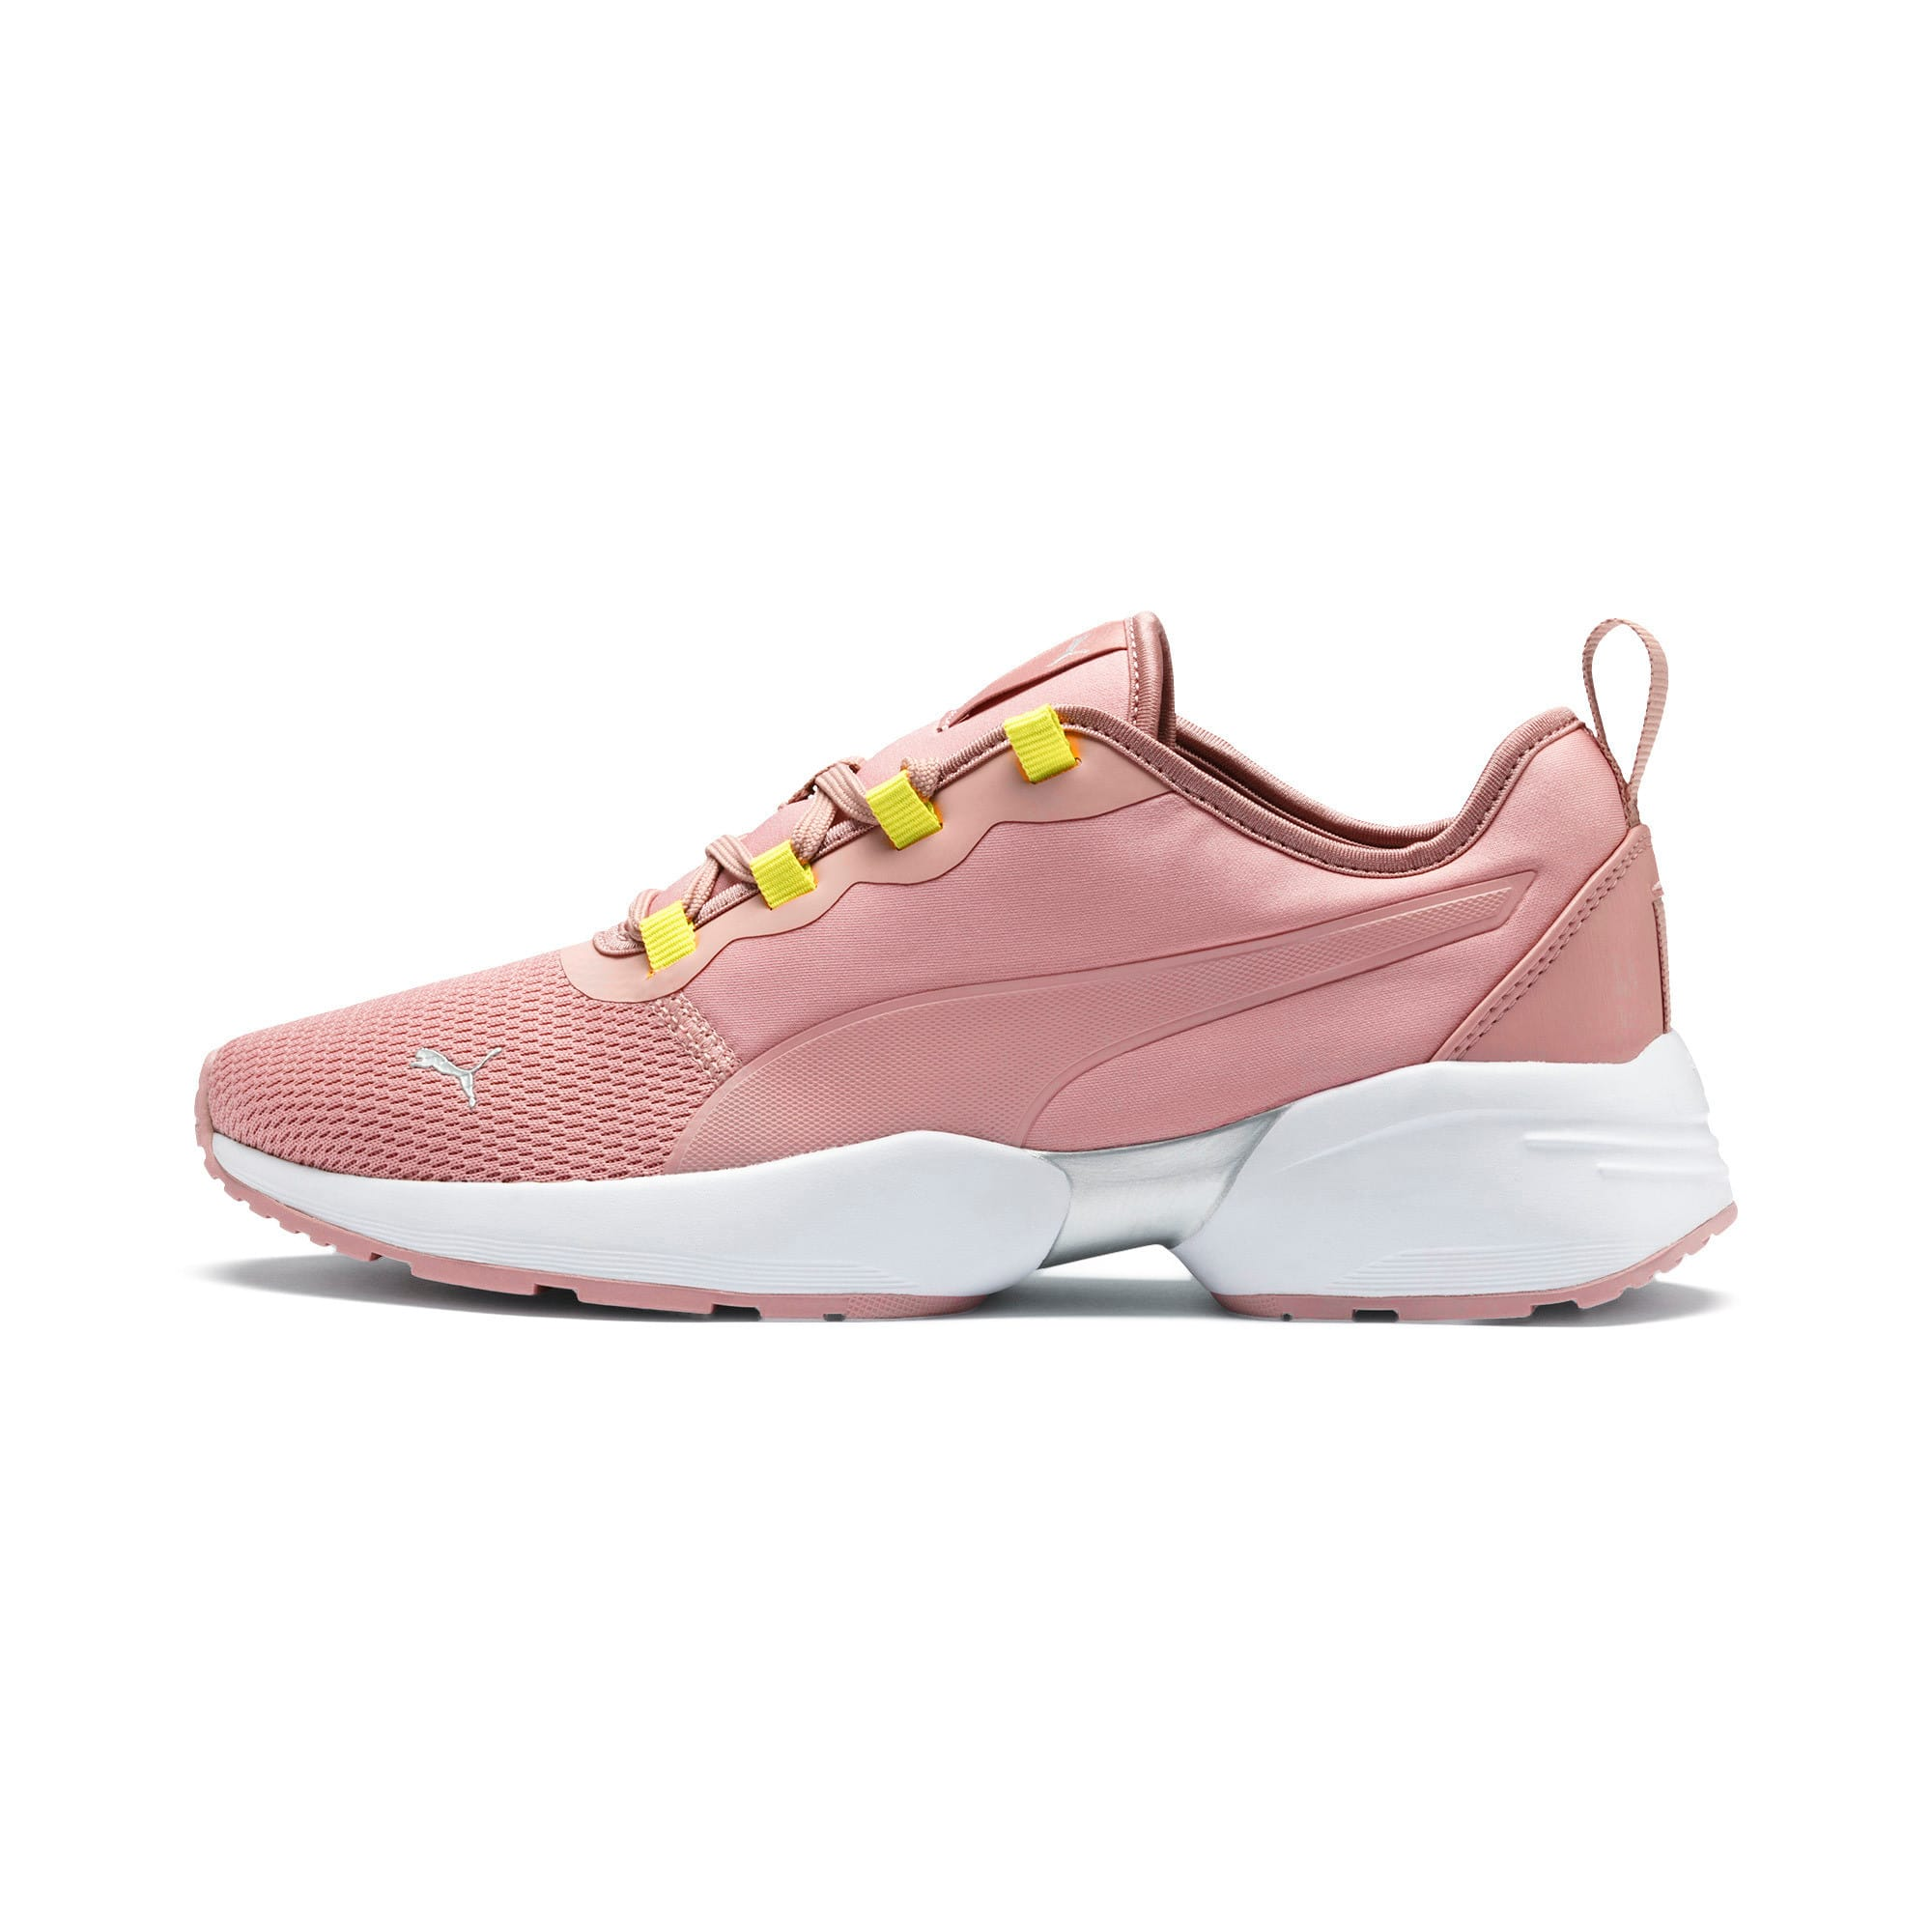 Thumbnail 1 of Sirena Sport Shift Women's Sneakers, Bridal Rose-Yellow Alert, medium